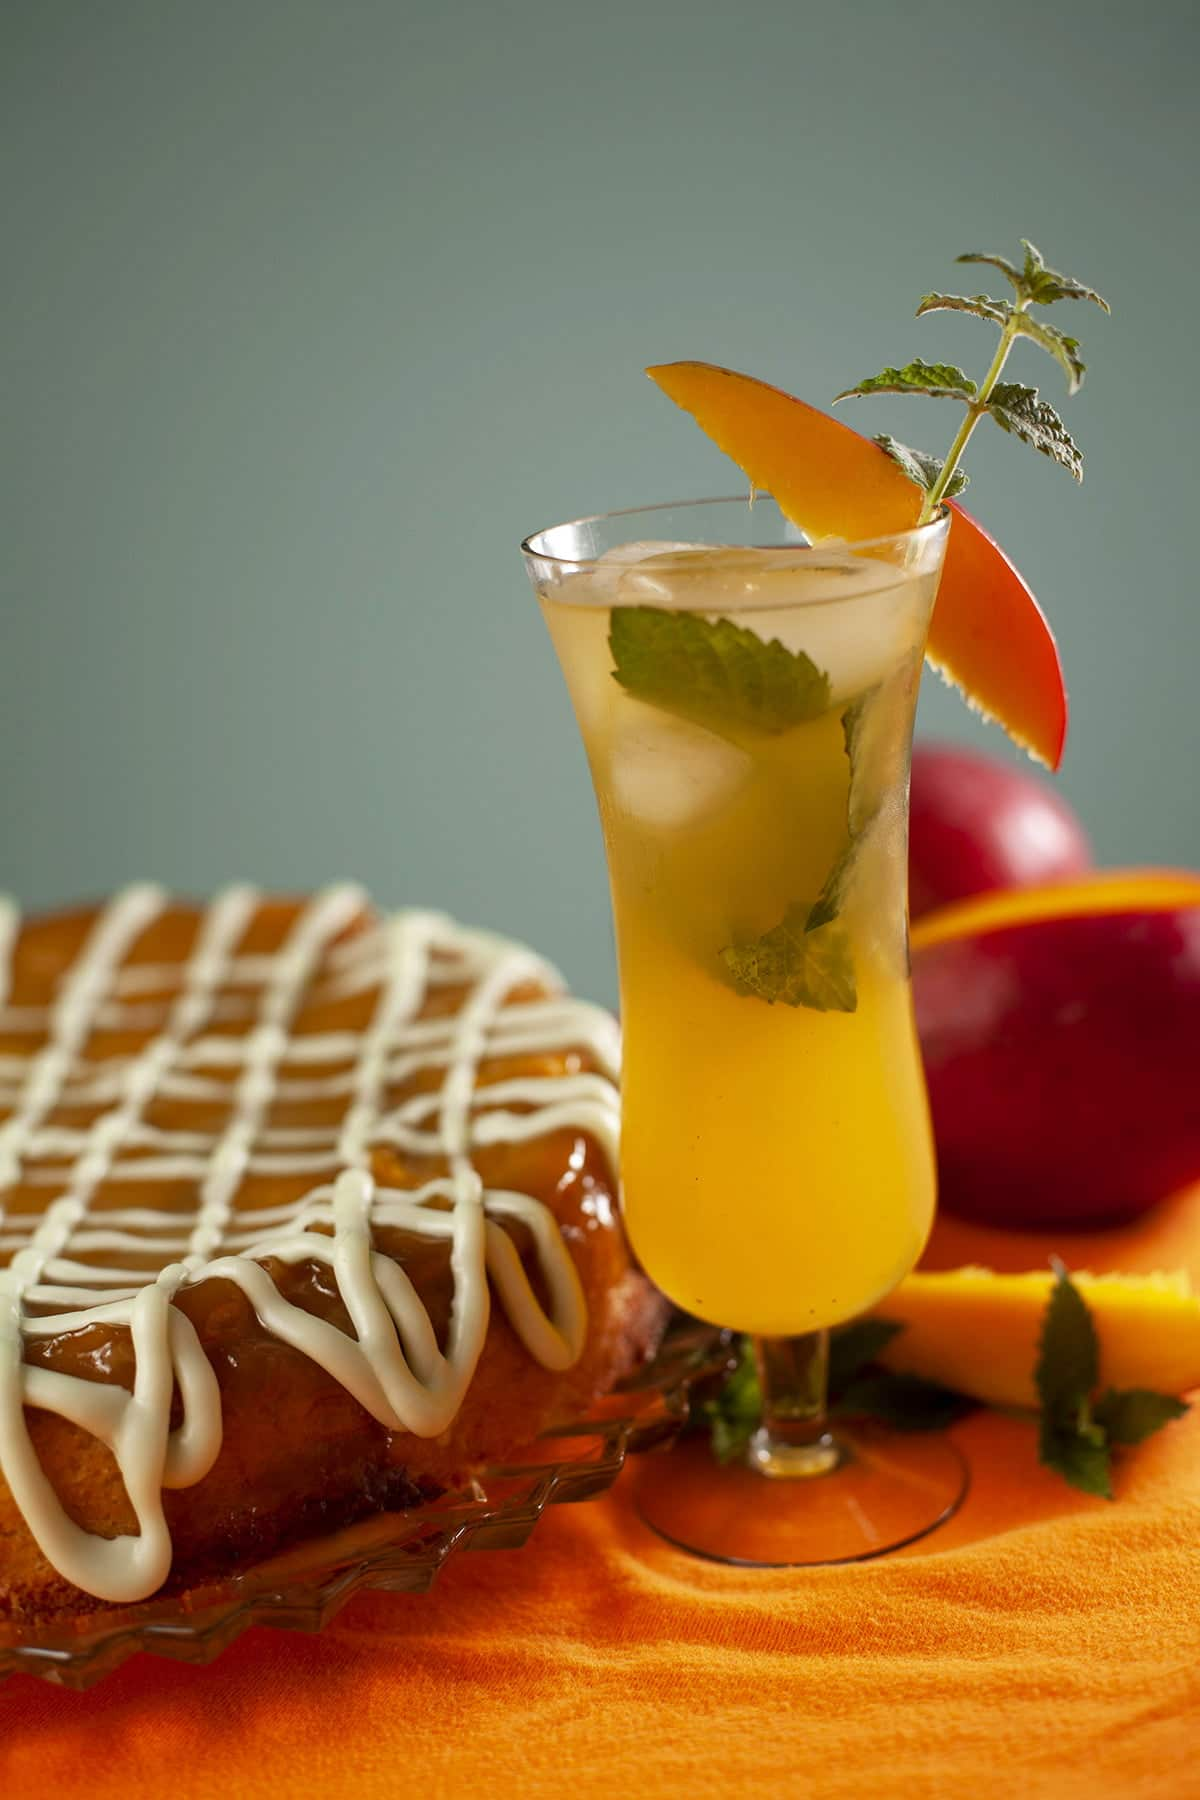 A mango mojito upside down cake: a large round single layer mango upside down cake, on a glass plate.  It has a white icing drizzled over it, and has a sprig of fresh mint on the side of the plate.  There is a tall tulip glass with a mango mojito next to the cake.